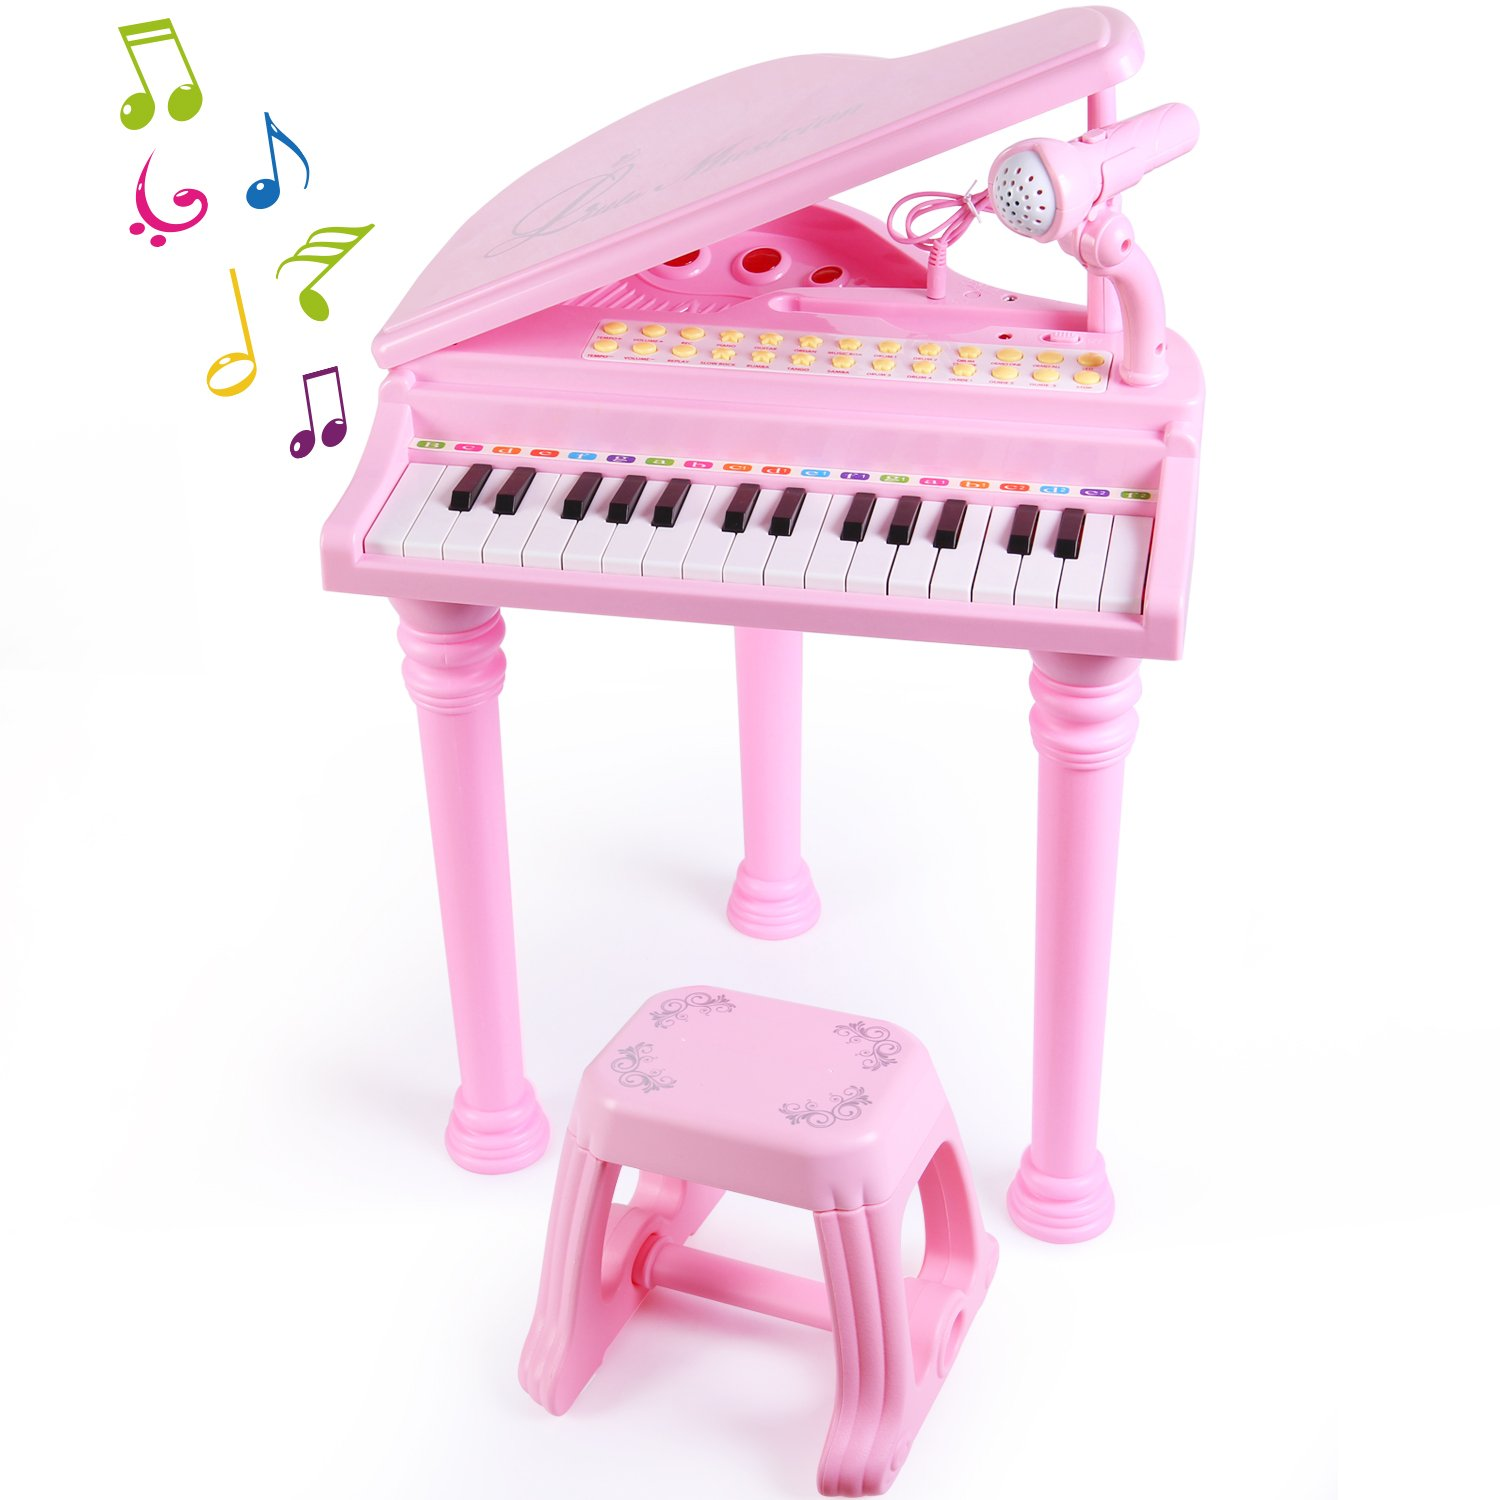 SGILE 31 Keys Musical Piano Toy with Microphone and Stool, Learn-to-Play for Girl Toddlers Kids Singing Music development, Audio link with Mobile MP3 IPad PC,Pink